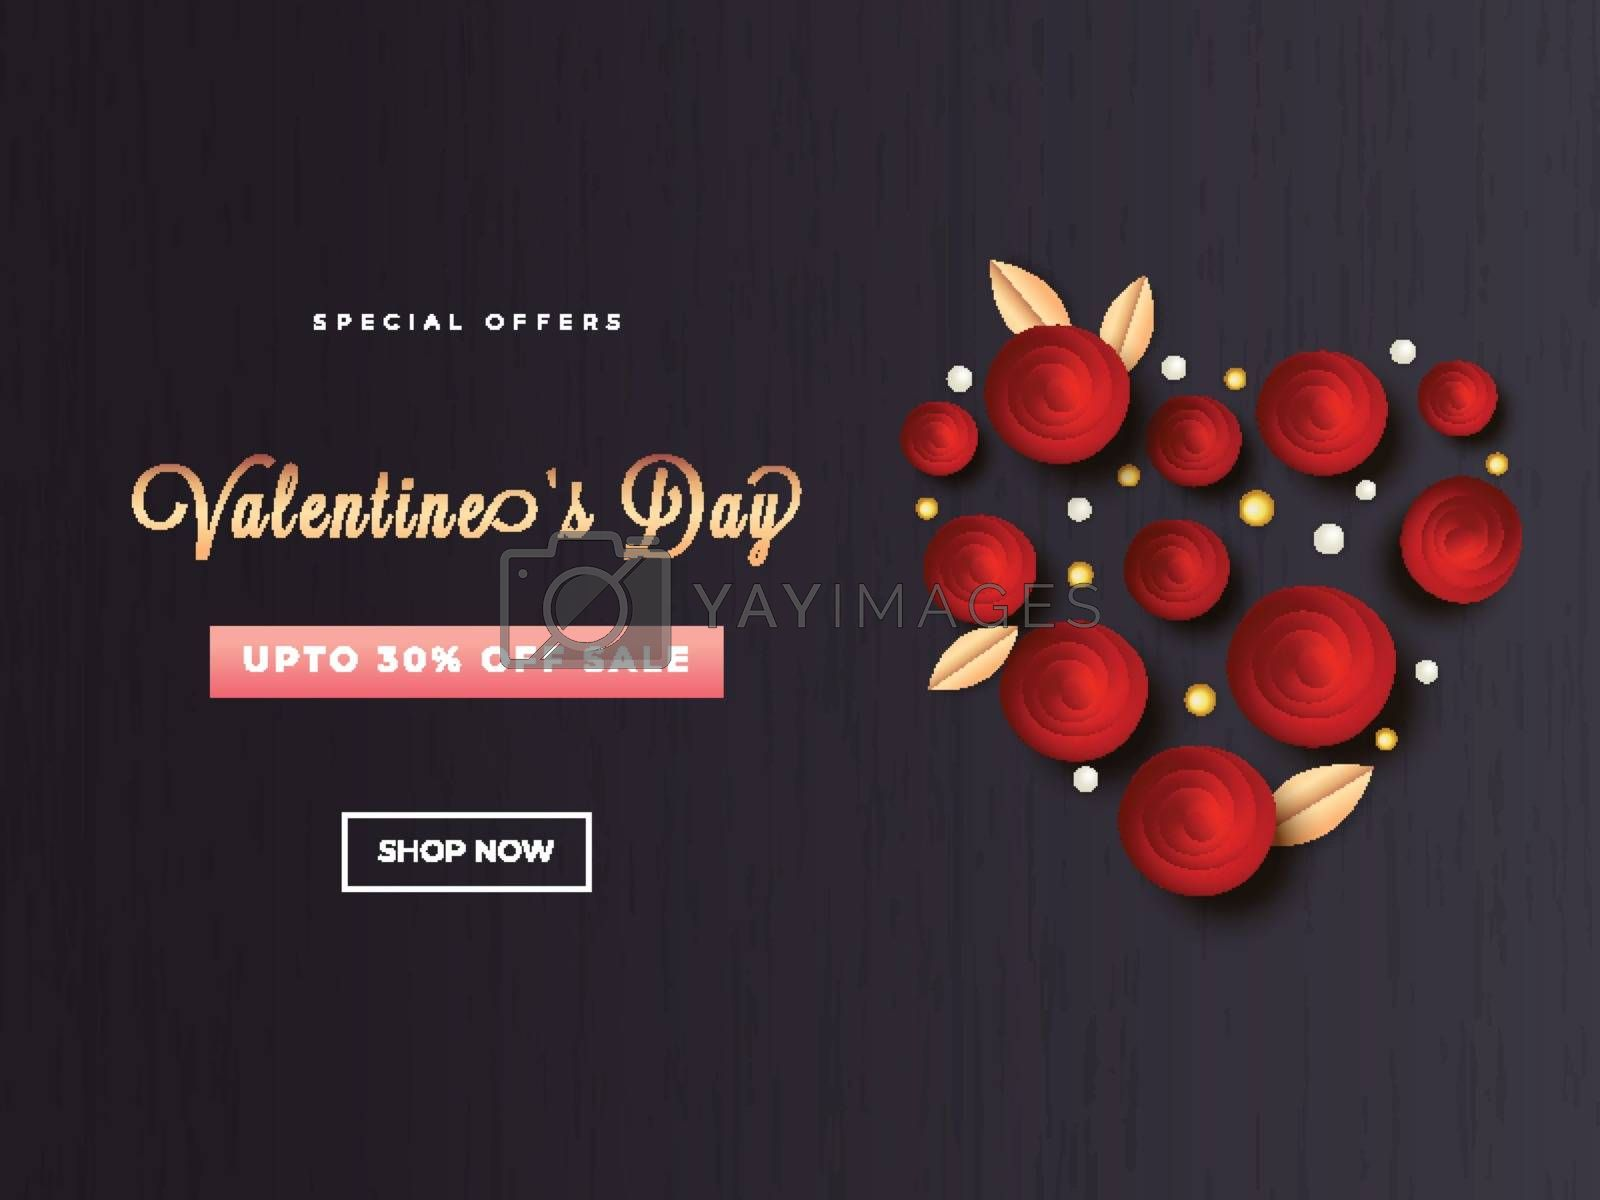 Creative heart shape on black background with 30% discount offer for Valentine's Day poster or template design.